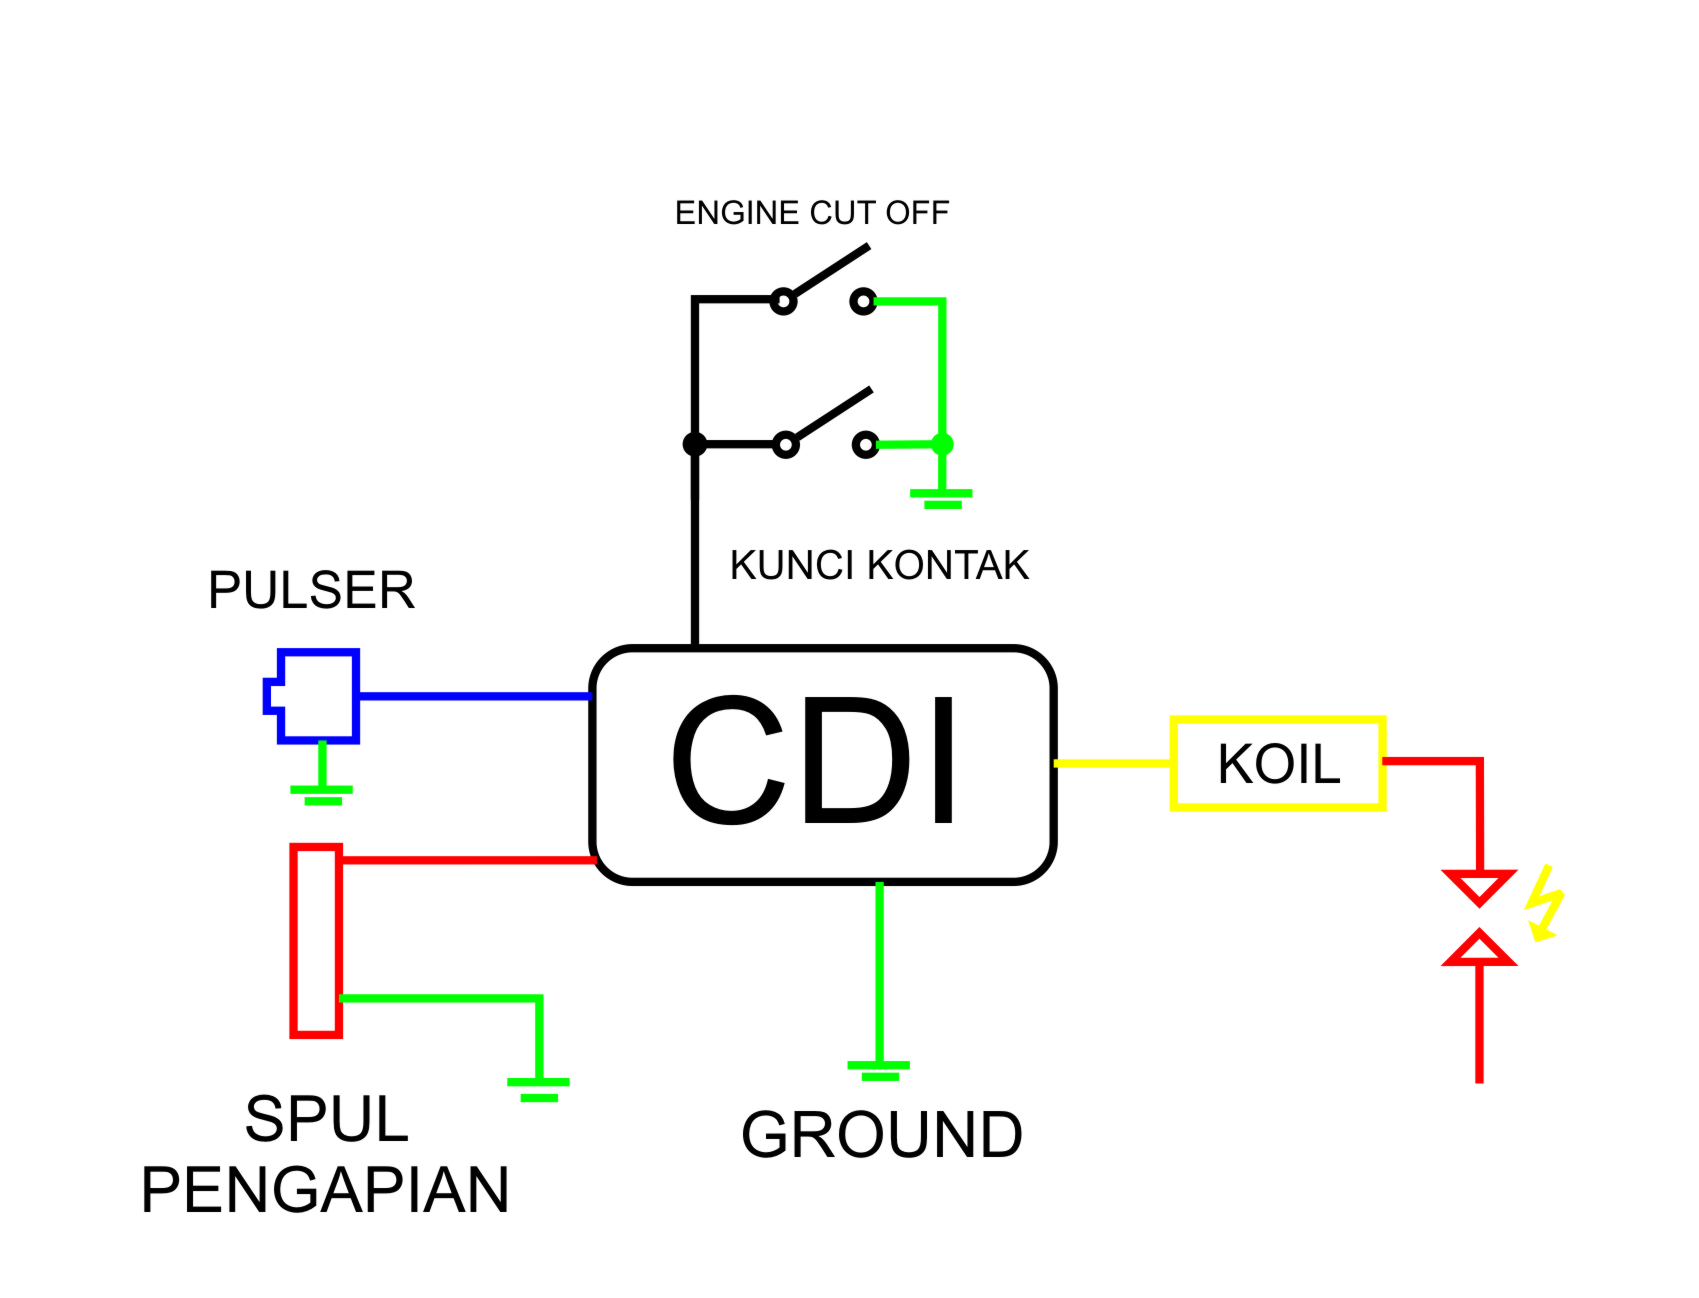 wiring on off switch diagram with Engine Cut Off Pahami Karakternya Biar Ga Nyusahin on US20130119887 moreover Light Sensitive Switch additionally Ignition Of Fluorescent L s Schematic further Interfacing Relay With Pic Microcontroller together with Signal Stat 900 Again.